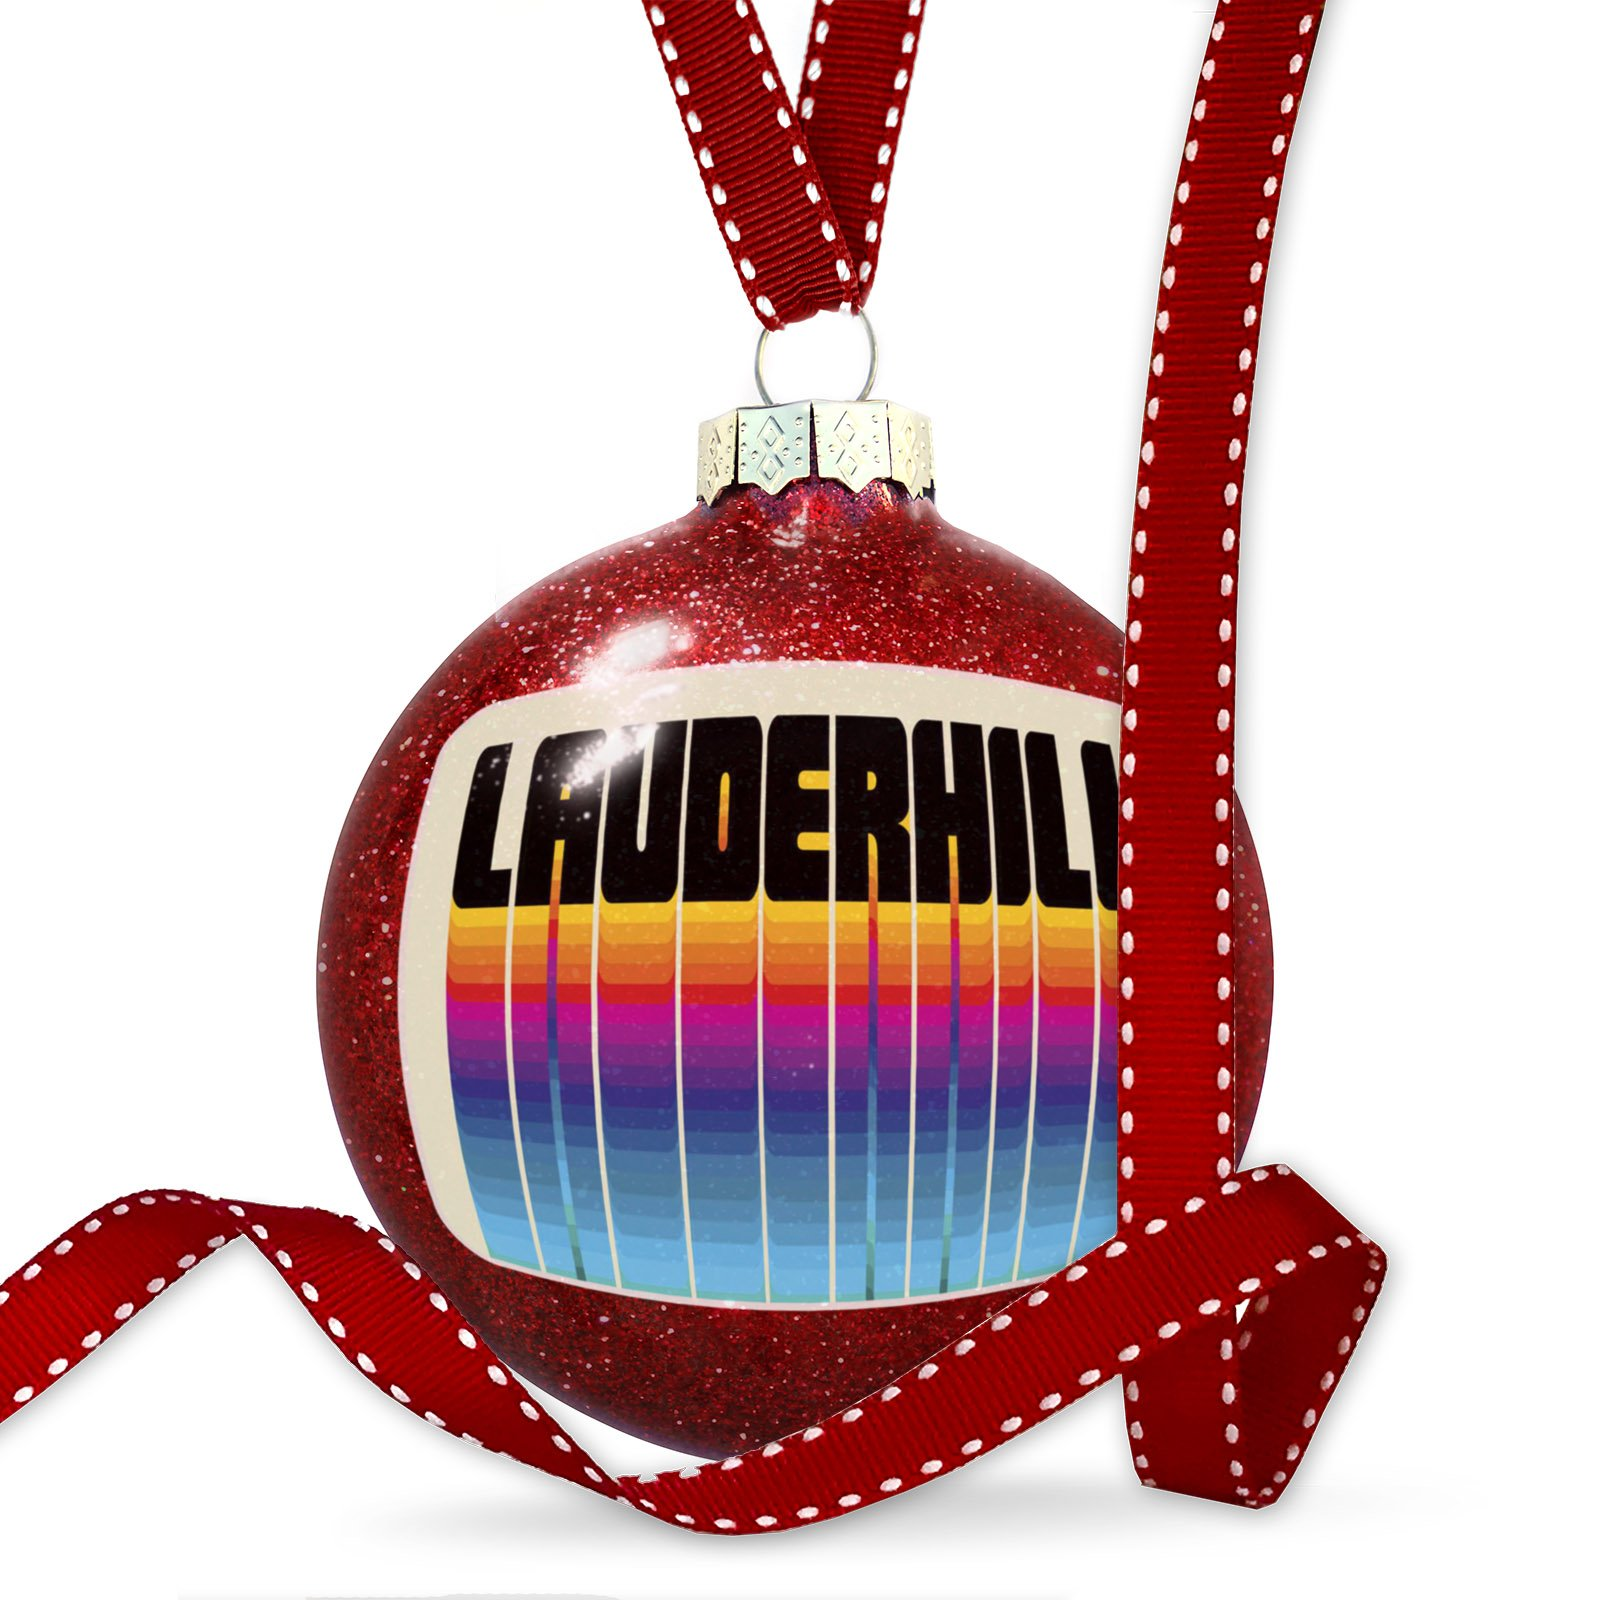 Christmas Decoration Retro Cites States Countries Lauderhill Ornament by NEONBLOND (Image #1)